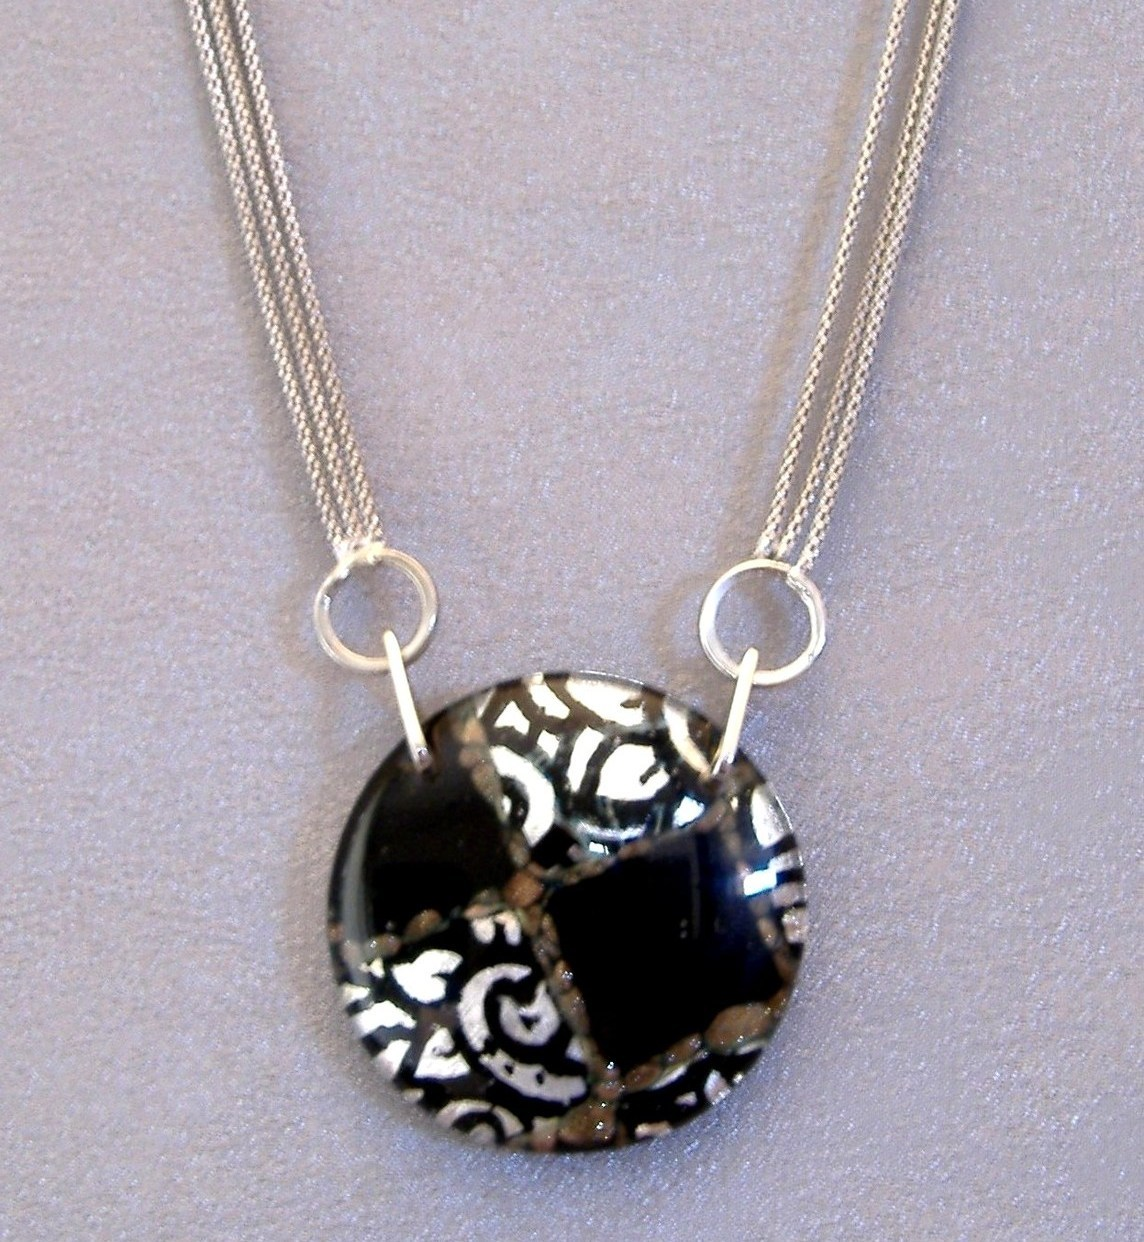 Venetian Medallion Pendant Sterling Silver Chain Unique Necklace Black